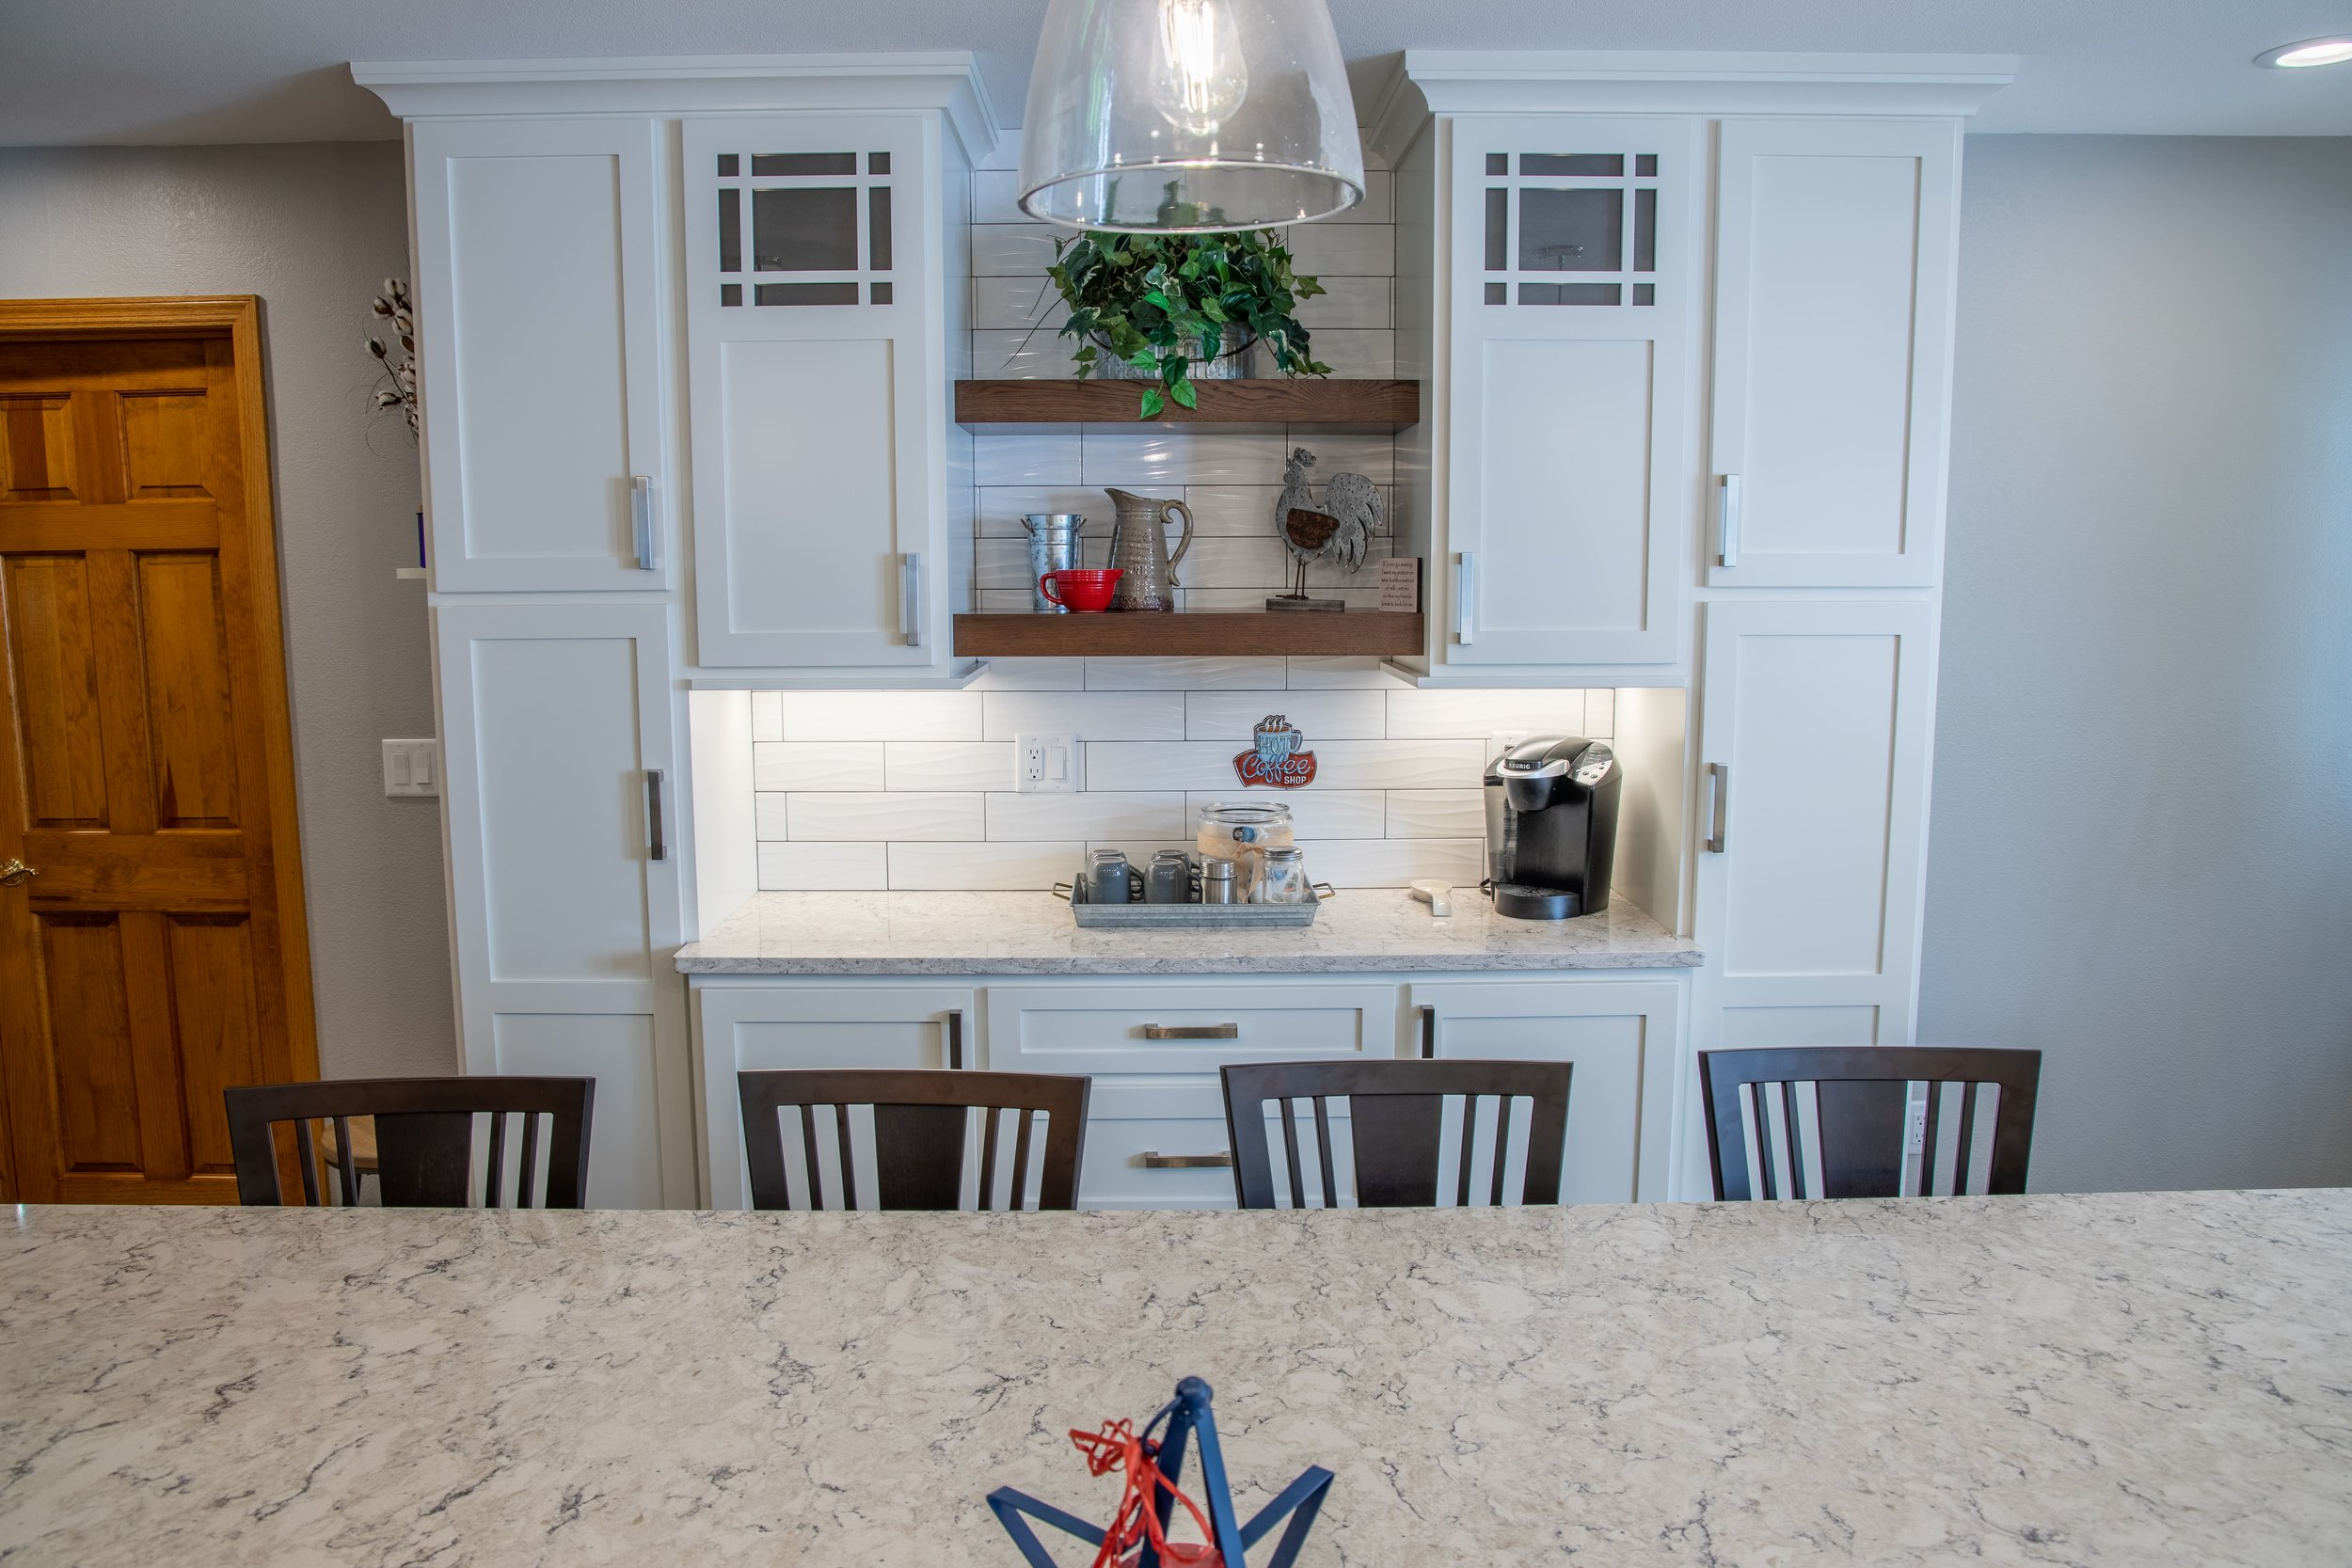 kitchen-remodel-renovate-madison-wi-8.jpg